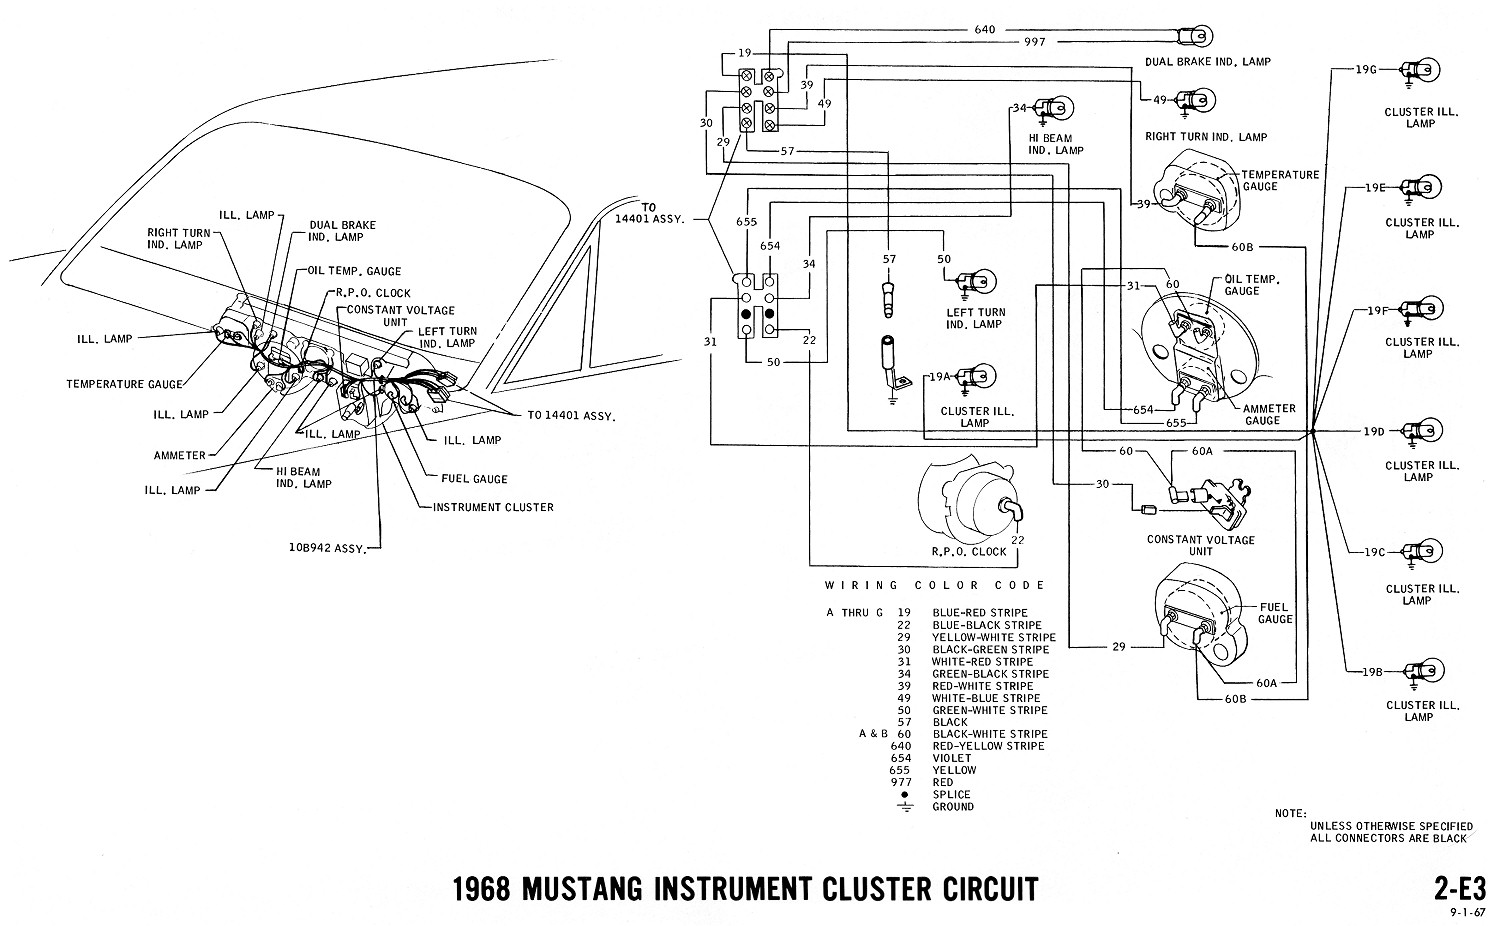 E3 1968 mustang wiring diagrams evolving software wiring diagram 1968 ford mustang coupe at bayanpartner.co